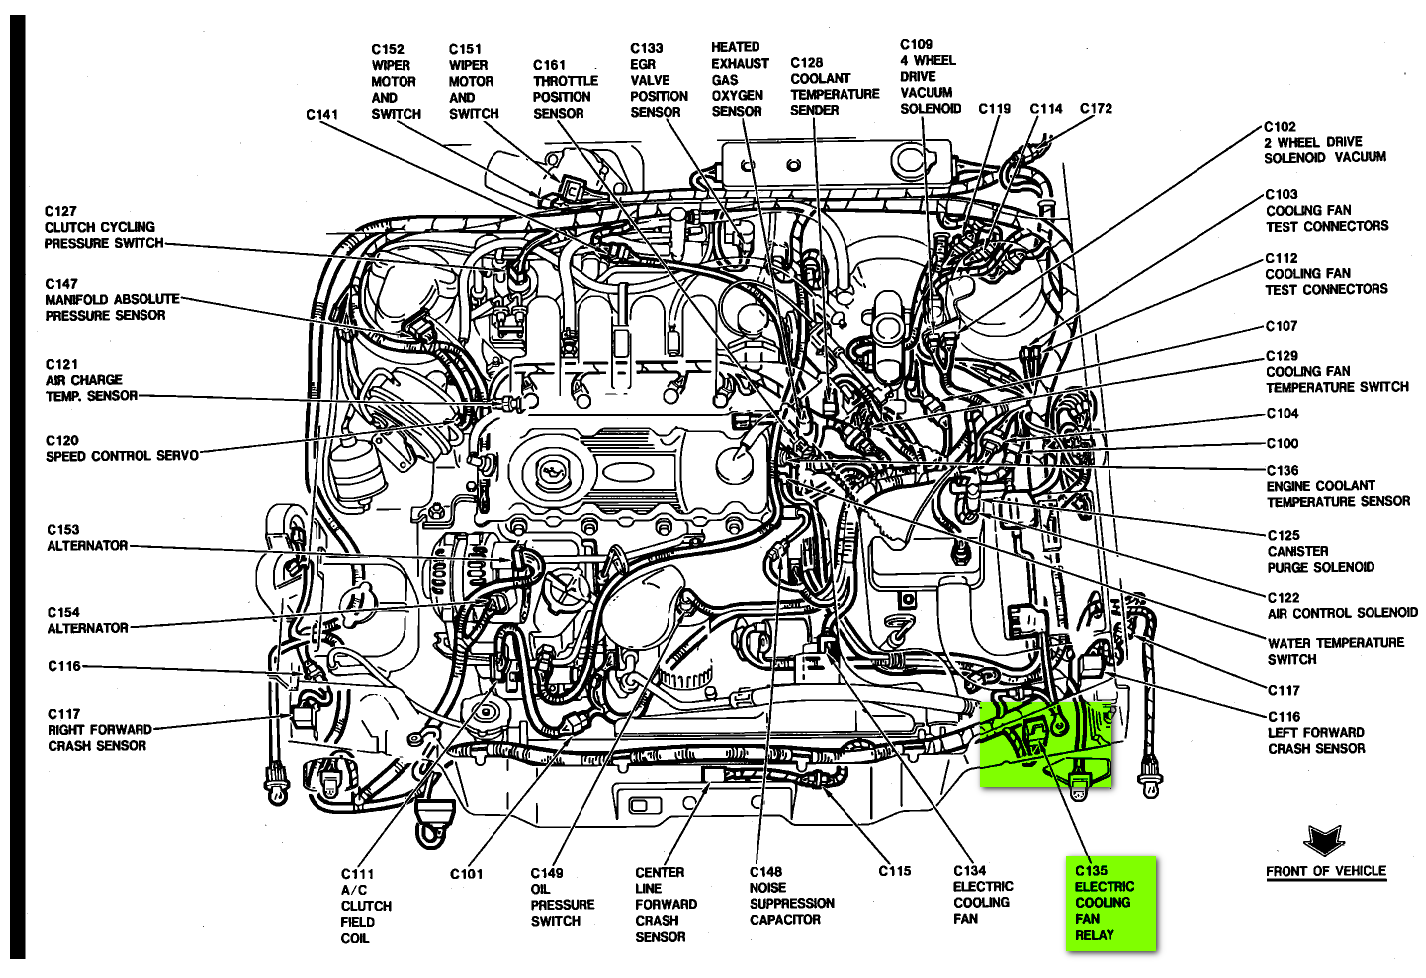 where is the radiator fan relay switch located on 1991